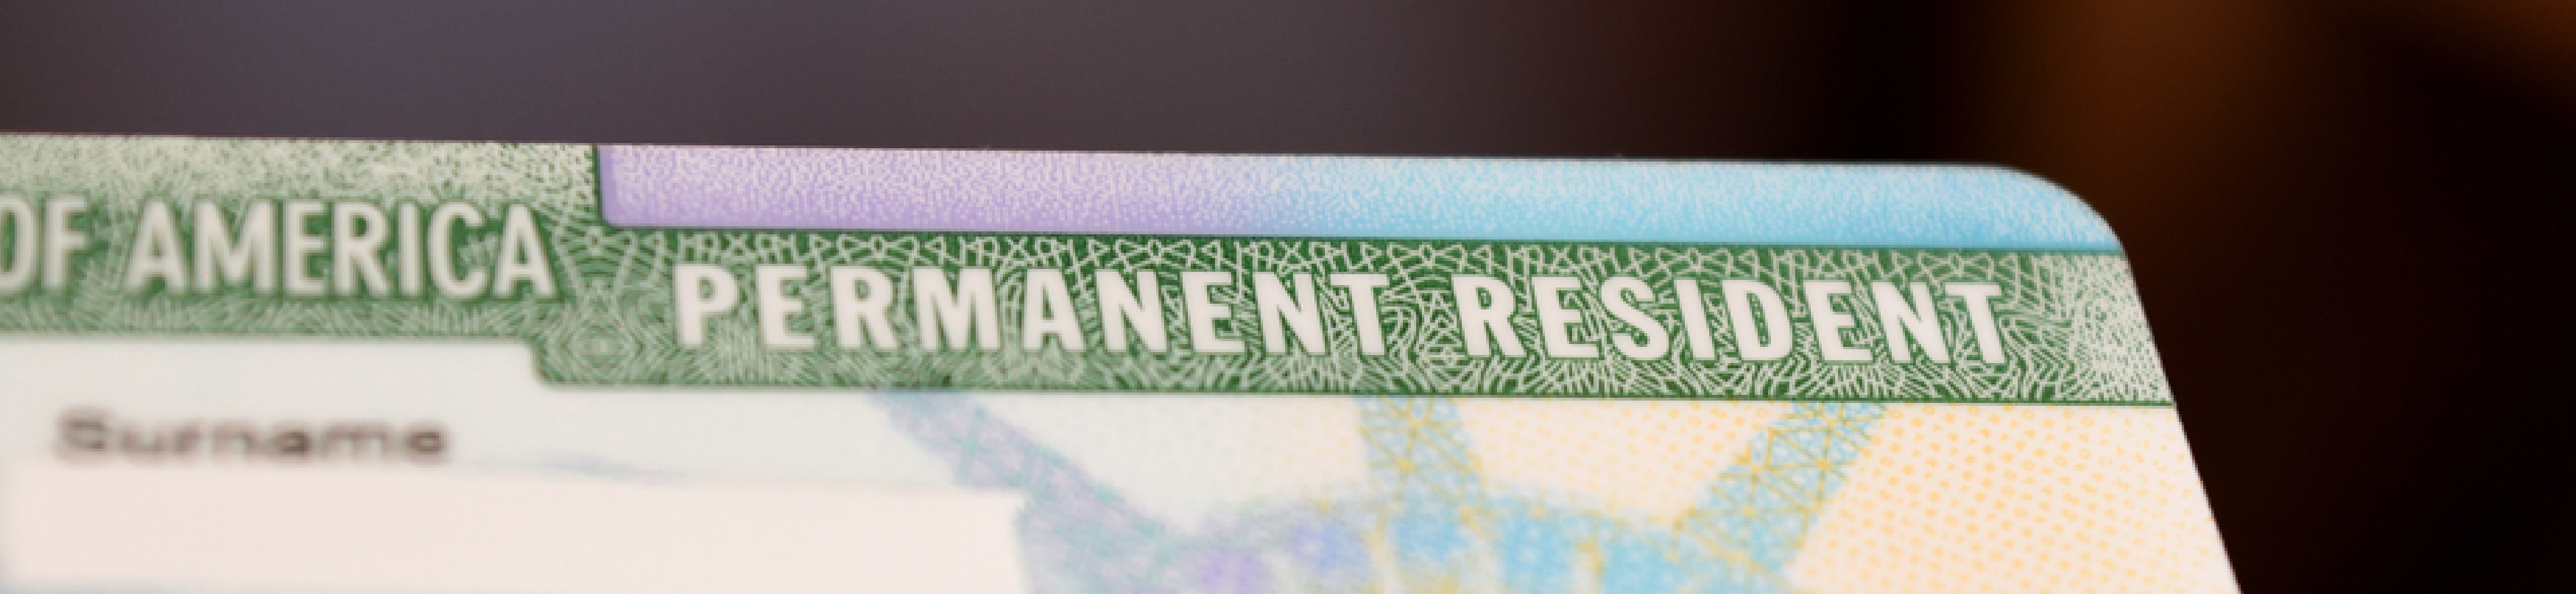 green-card-header